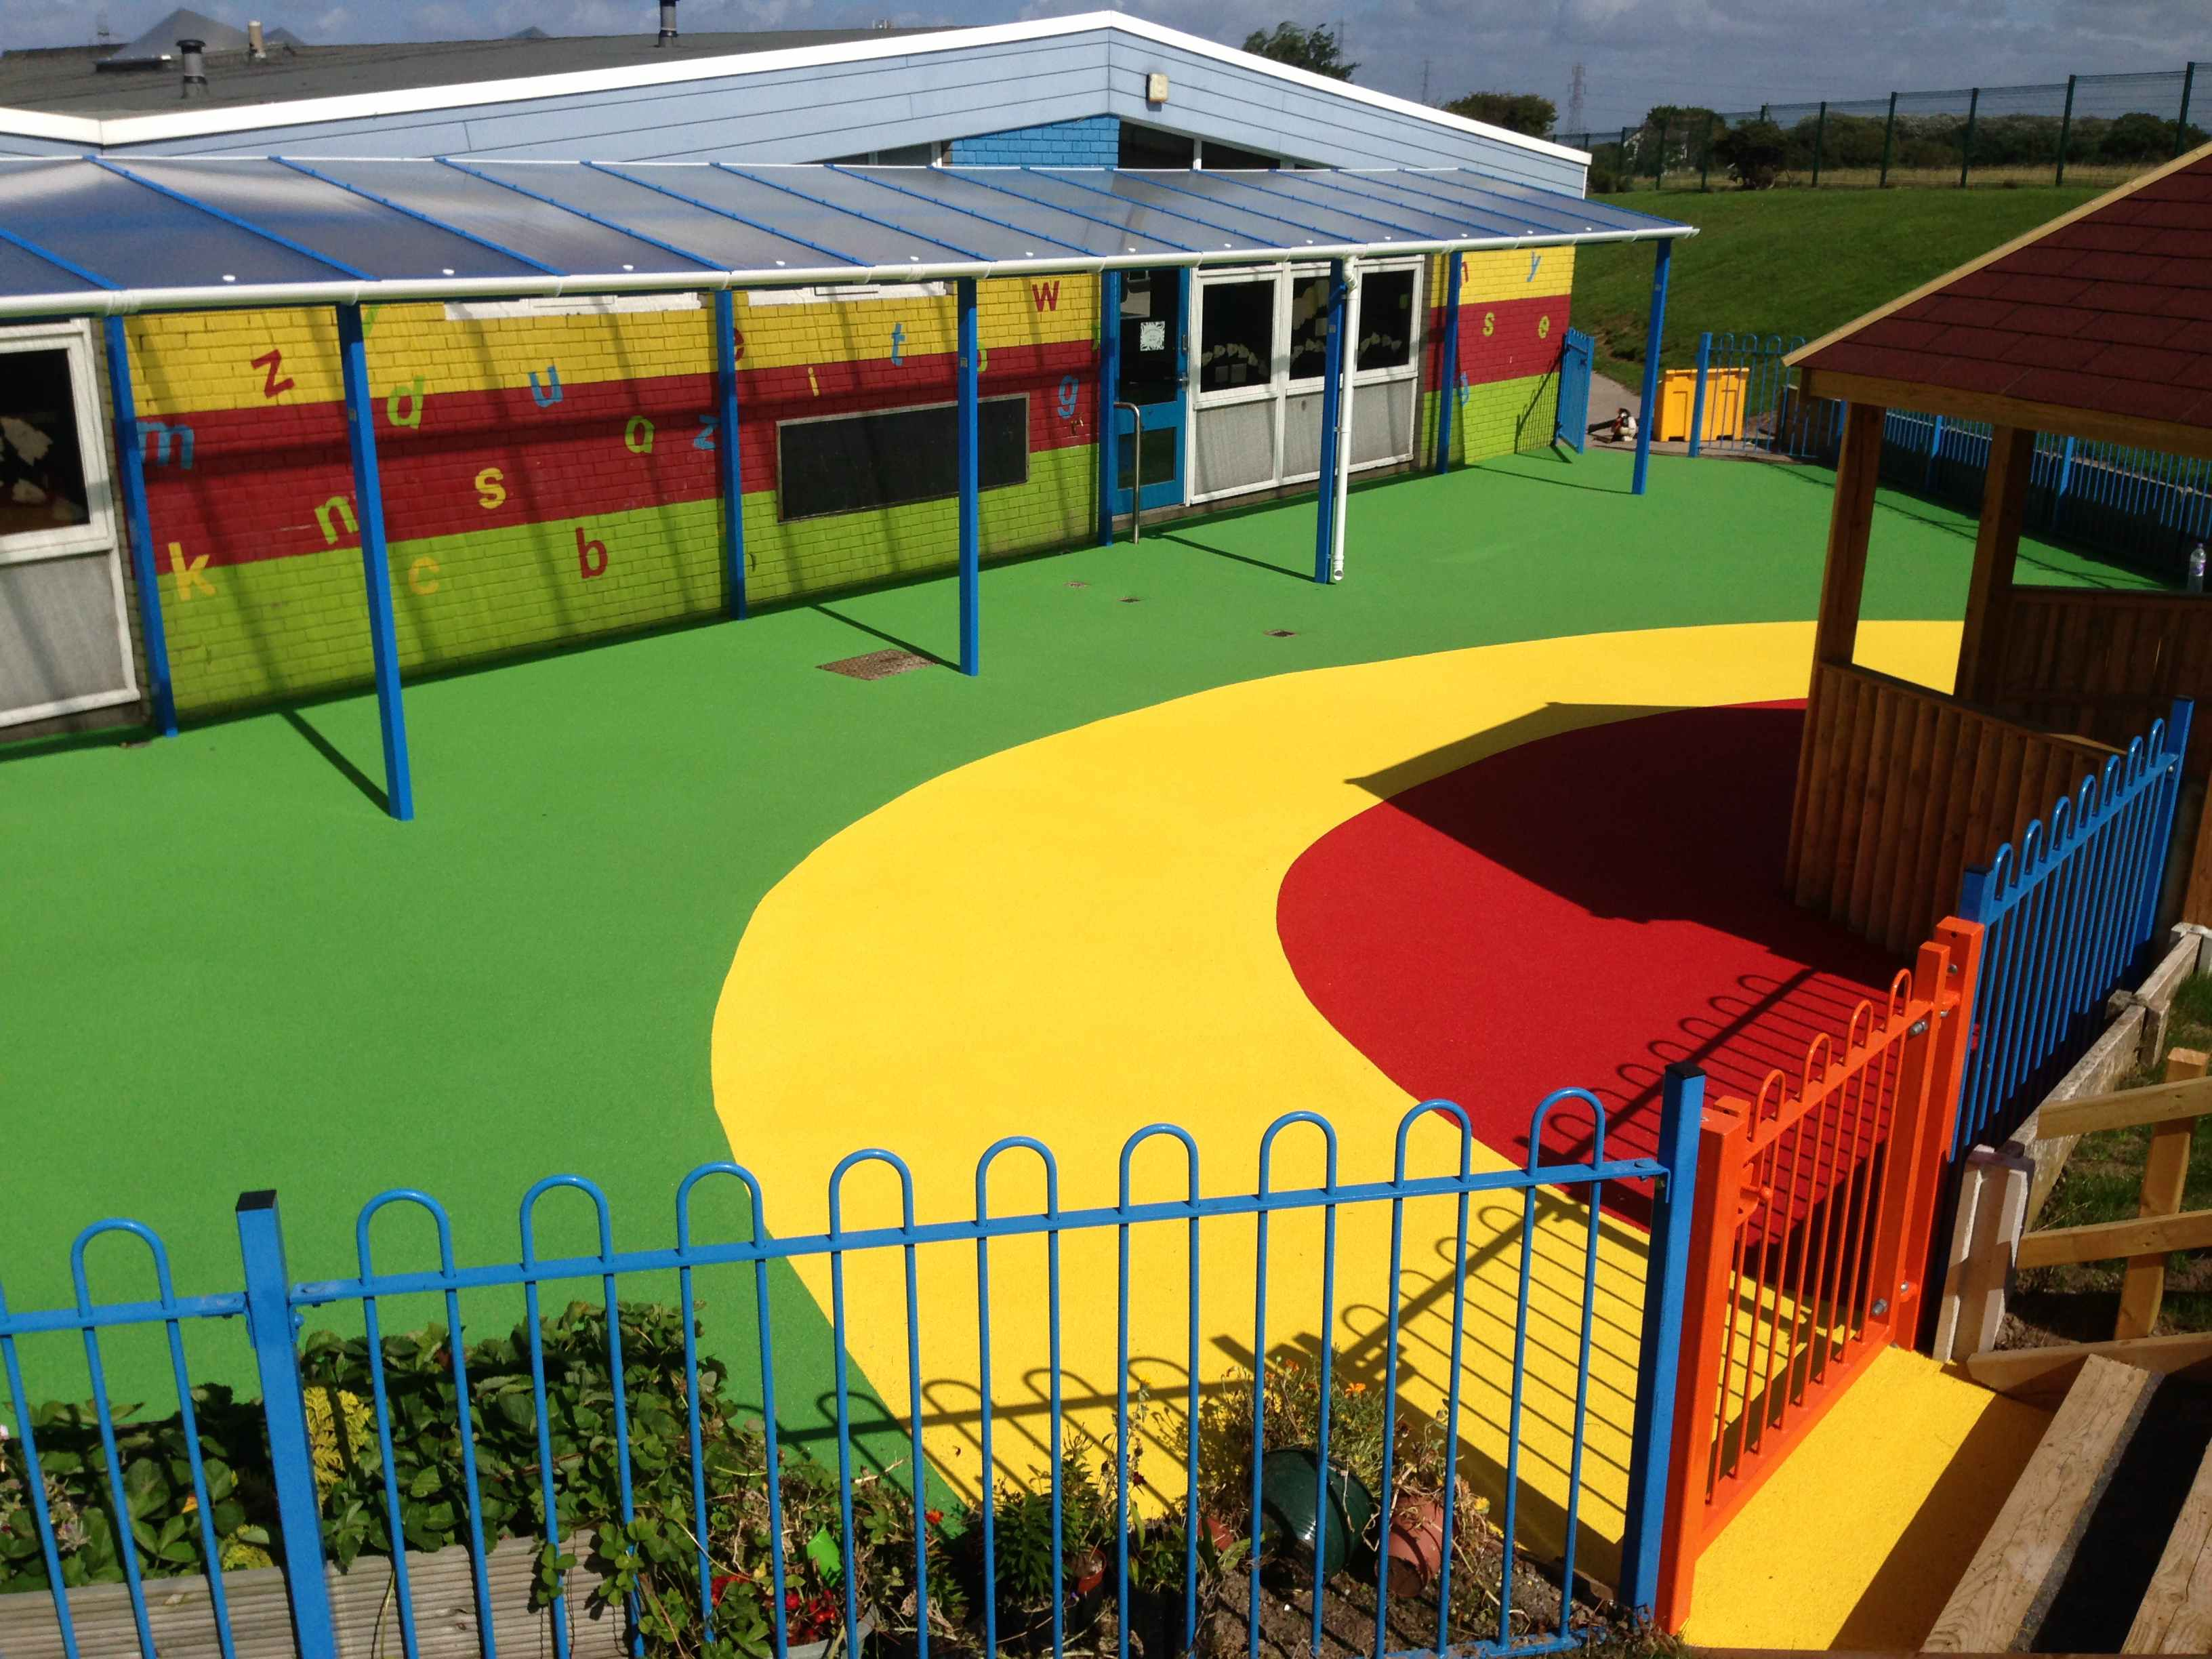 Beautiful Playground Design Ideas Pictures - Home Design Ideas ...